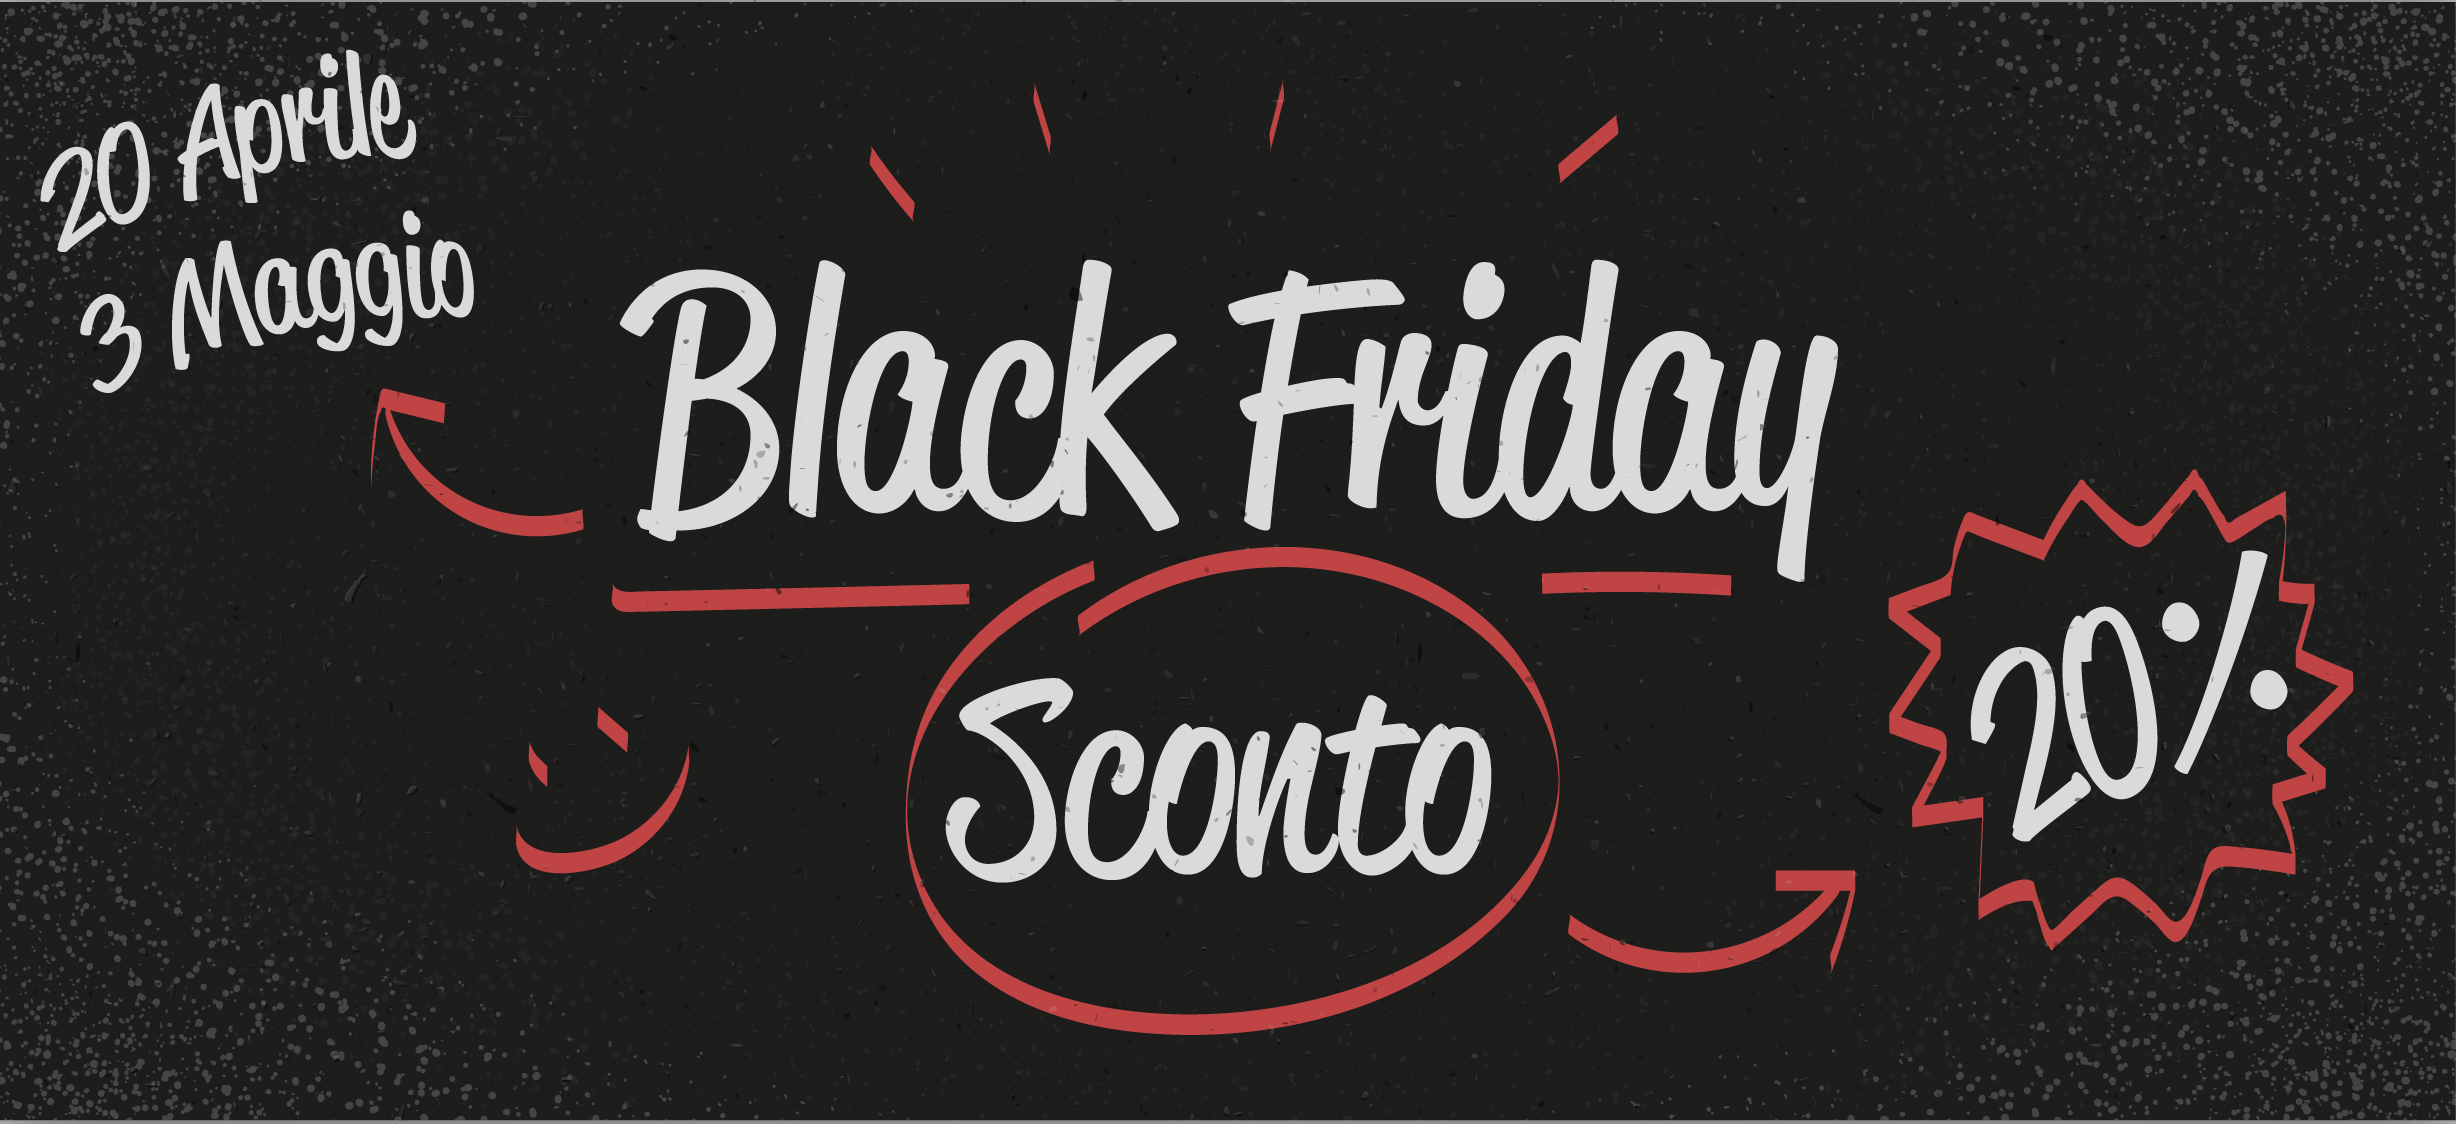 Black Friday Primaverile 2017